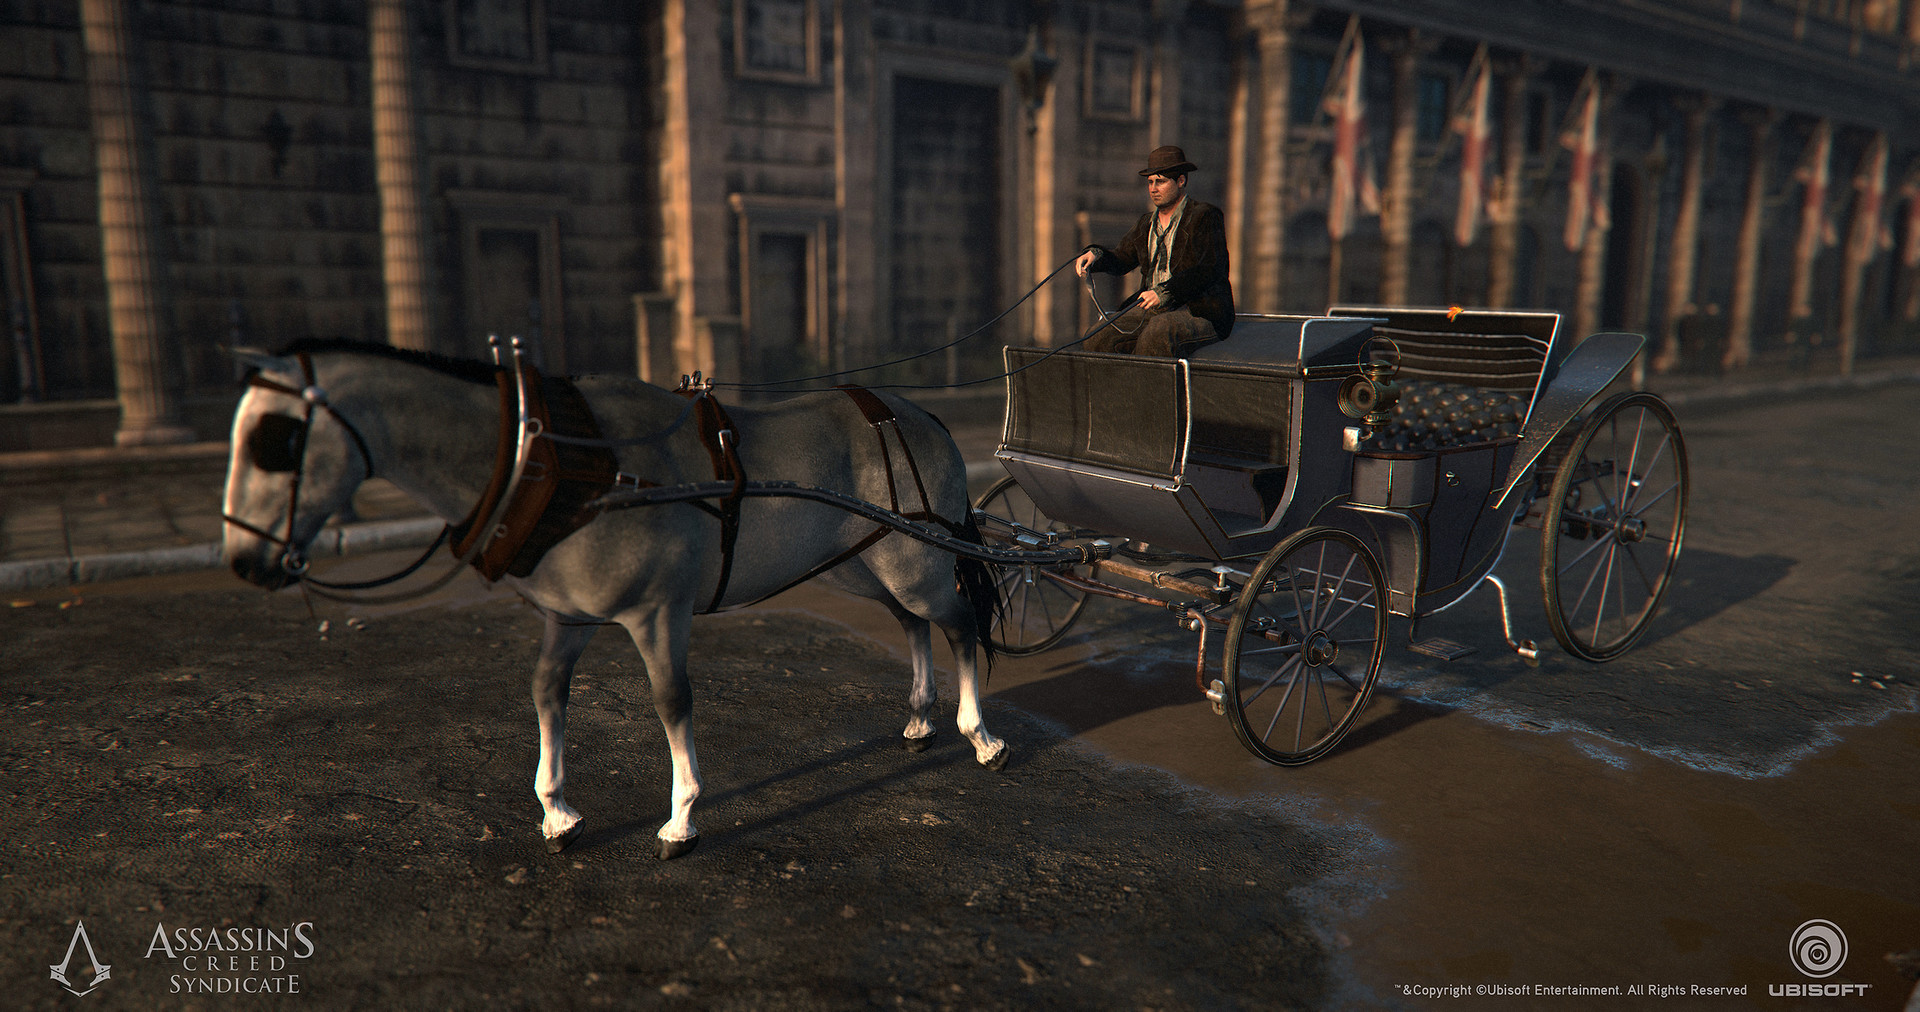 ArtStation - Assassin's Creed Syndicate - Carriages - Textures ...